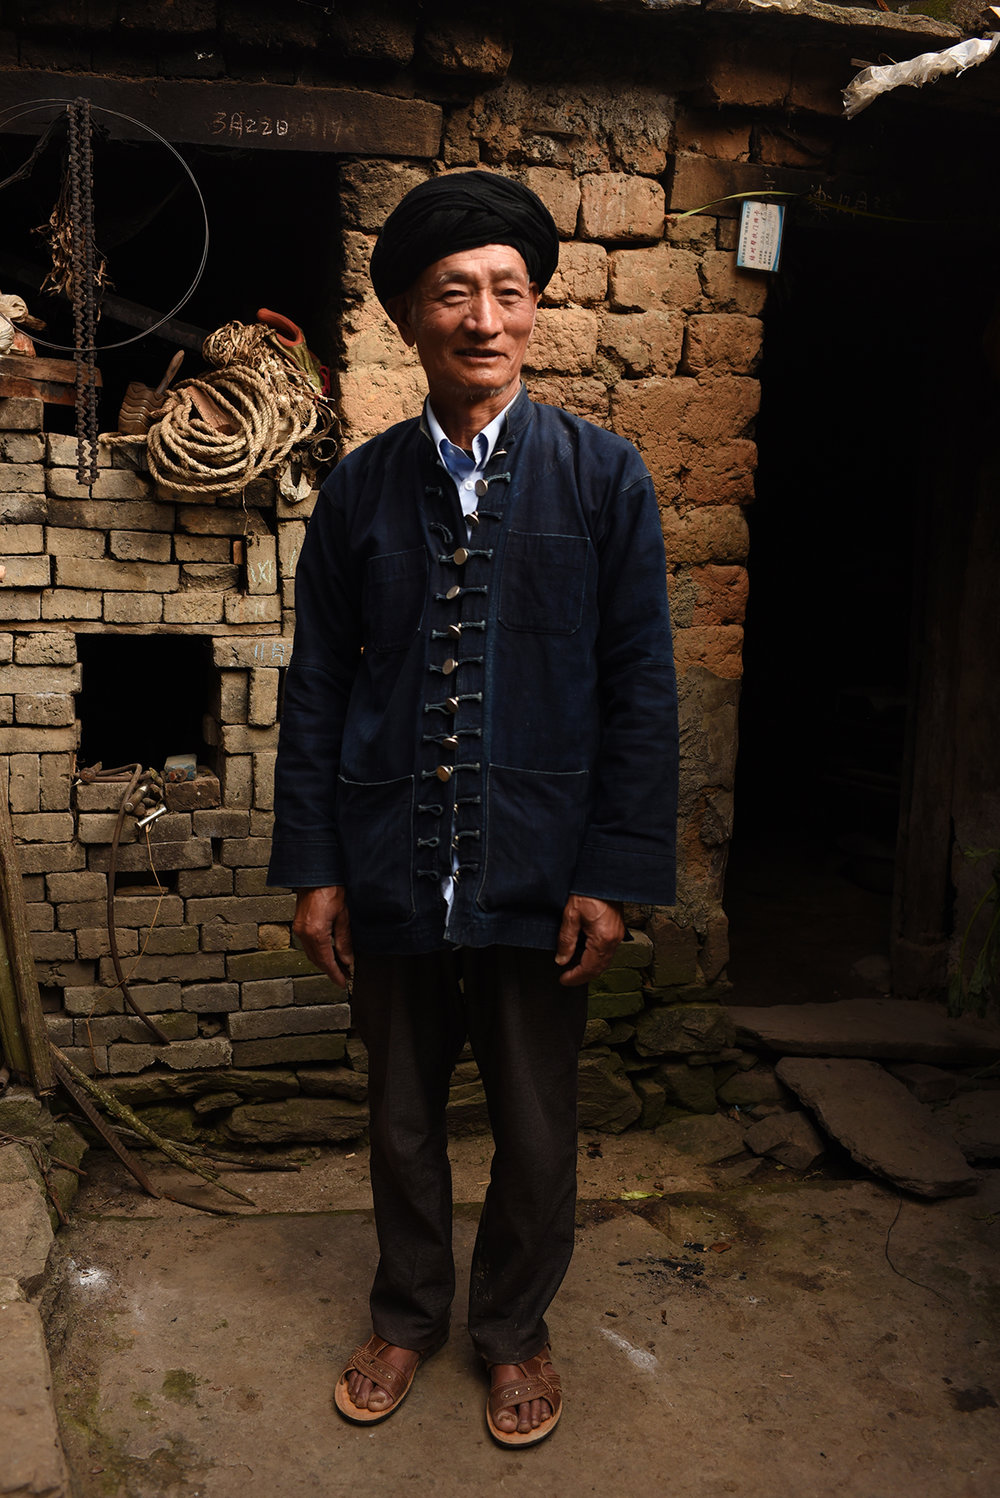 Wang LiLiang, inheritor of Lezuo musical tradition. Dieshi village, Yunnan, 2017.